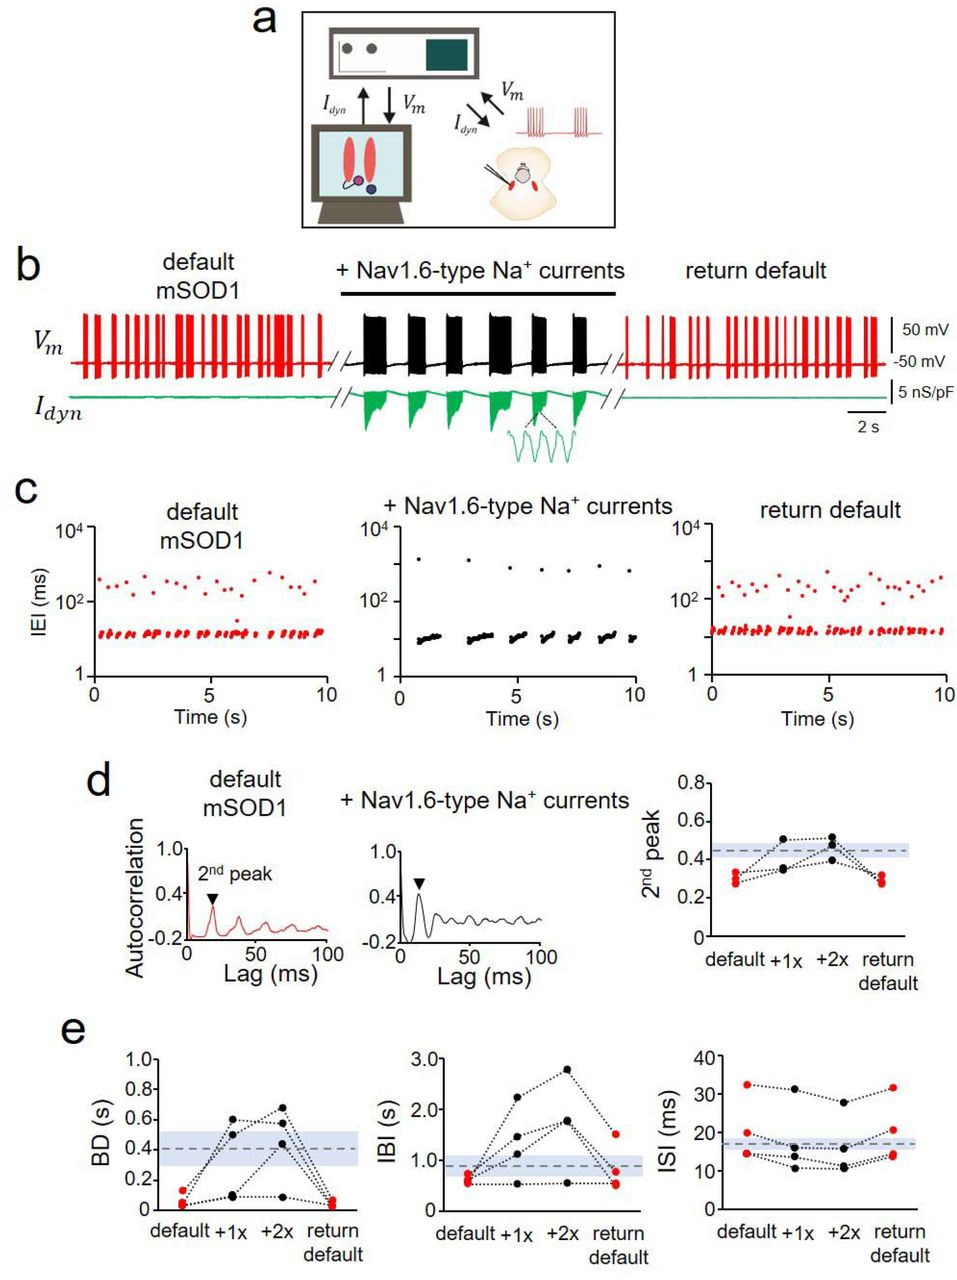 Rescue of Nav 1.6-type sodium currents in mSOD1 Mes V neurons using dynamic-clamp. a. Schematic shows the dynamic-clamp setup used to introduce conductance-based models of Nav1.6-type Na + currents into mSOD1 Mes V neurons in real-time during whole-cell patch-clamp recording; I dyn is the computer-generated model Na + current in combination with a step depolarization to drive the patched Mes V neuron; V m is the measured membrane voltage. b. Representative traces showing the membrane voltage in a bursting mSOD1 Mes V neuron with control/default behavior ( left red ), followed by addition of Nav1.6-type currents ( middle black ), that restores WT-like rhythmic bursting; subsequent removal of added currents returns default mSOD1 behavior ( right red ) in this neuron; Lower green trace shows I dyn . c. Time series plots of IEIs (log scale) for the three different conditions in ( b ); each dot represents an interval between two consecutive spikes (see detailed results). d. Autocorrelation function of the membrane voltage for default mSOD1 ( left ) and with addition of Nav1.6 currents (middle); the height of the 2 nd autocorrelation peak highlights rhythmicity (arrowhead); Right: measured 2 nd peak values for 4 mSOD1 cells are shown, with dashed horizontal line showing average WT values and shaded grey region indicates ±SD. e. Treatment effects on burst characteristics including burst duration (BD), inter-burst-intervals (IBI) and inter-spike-intervals within bursts (ISI) shown for various mSOD1 cells tested under the different conditions as in ( b ); dashed lines indicate average WT values with grey regions marking the ± s.d.